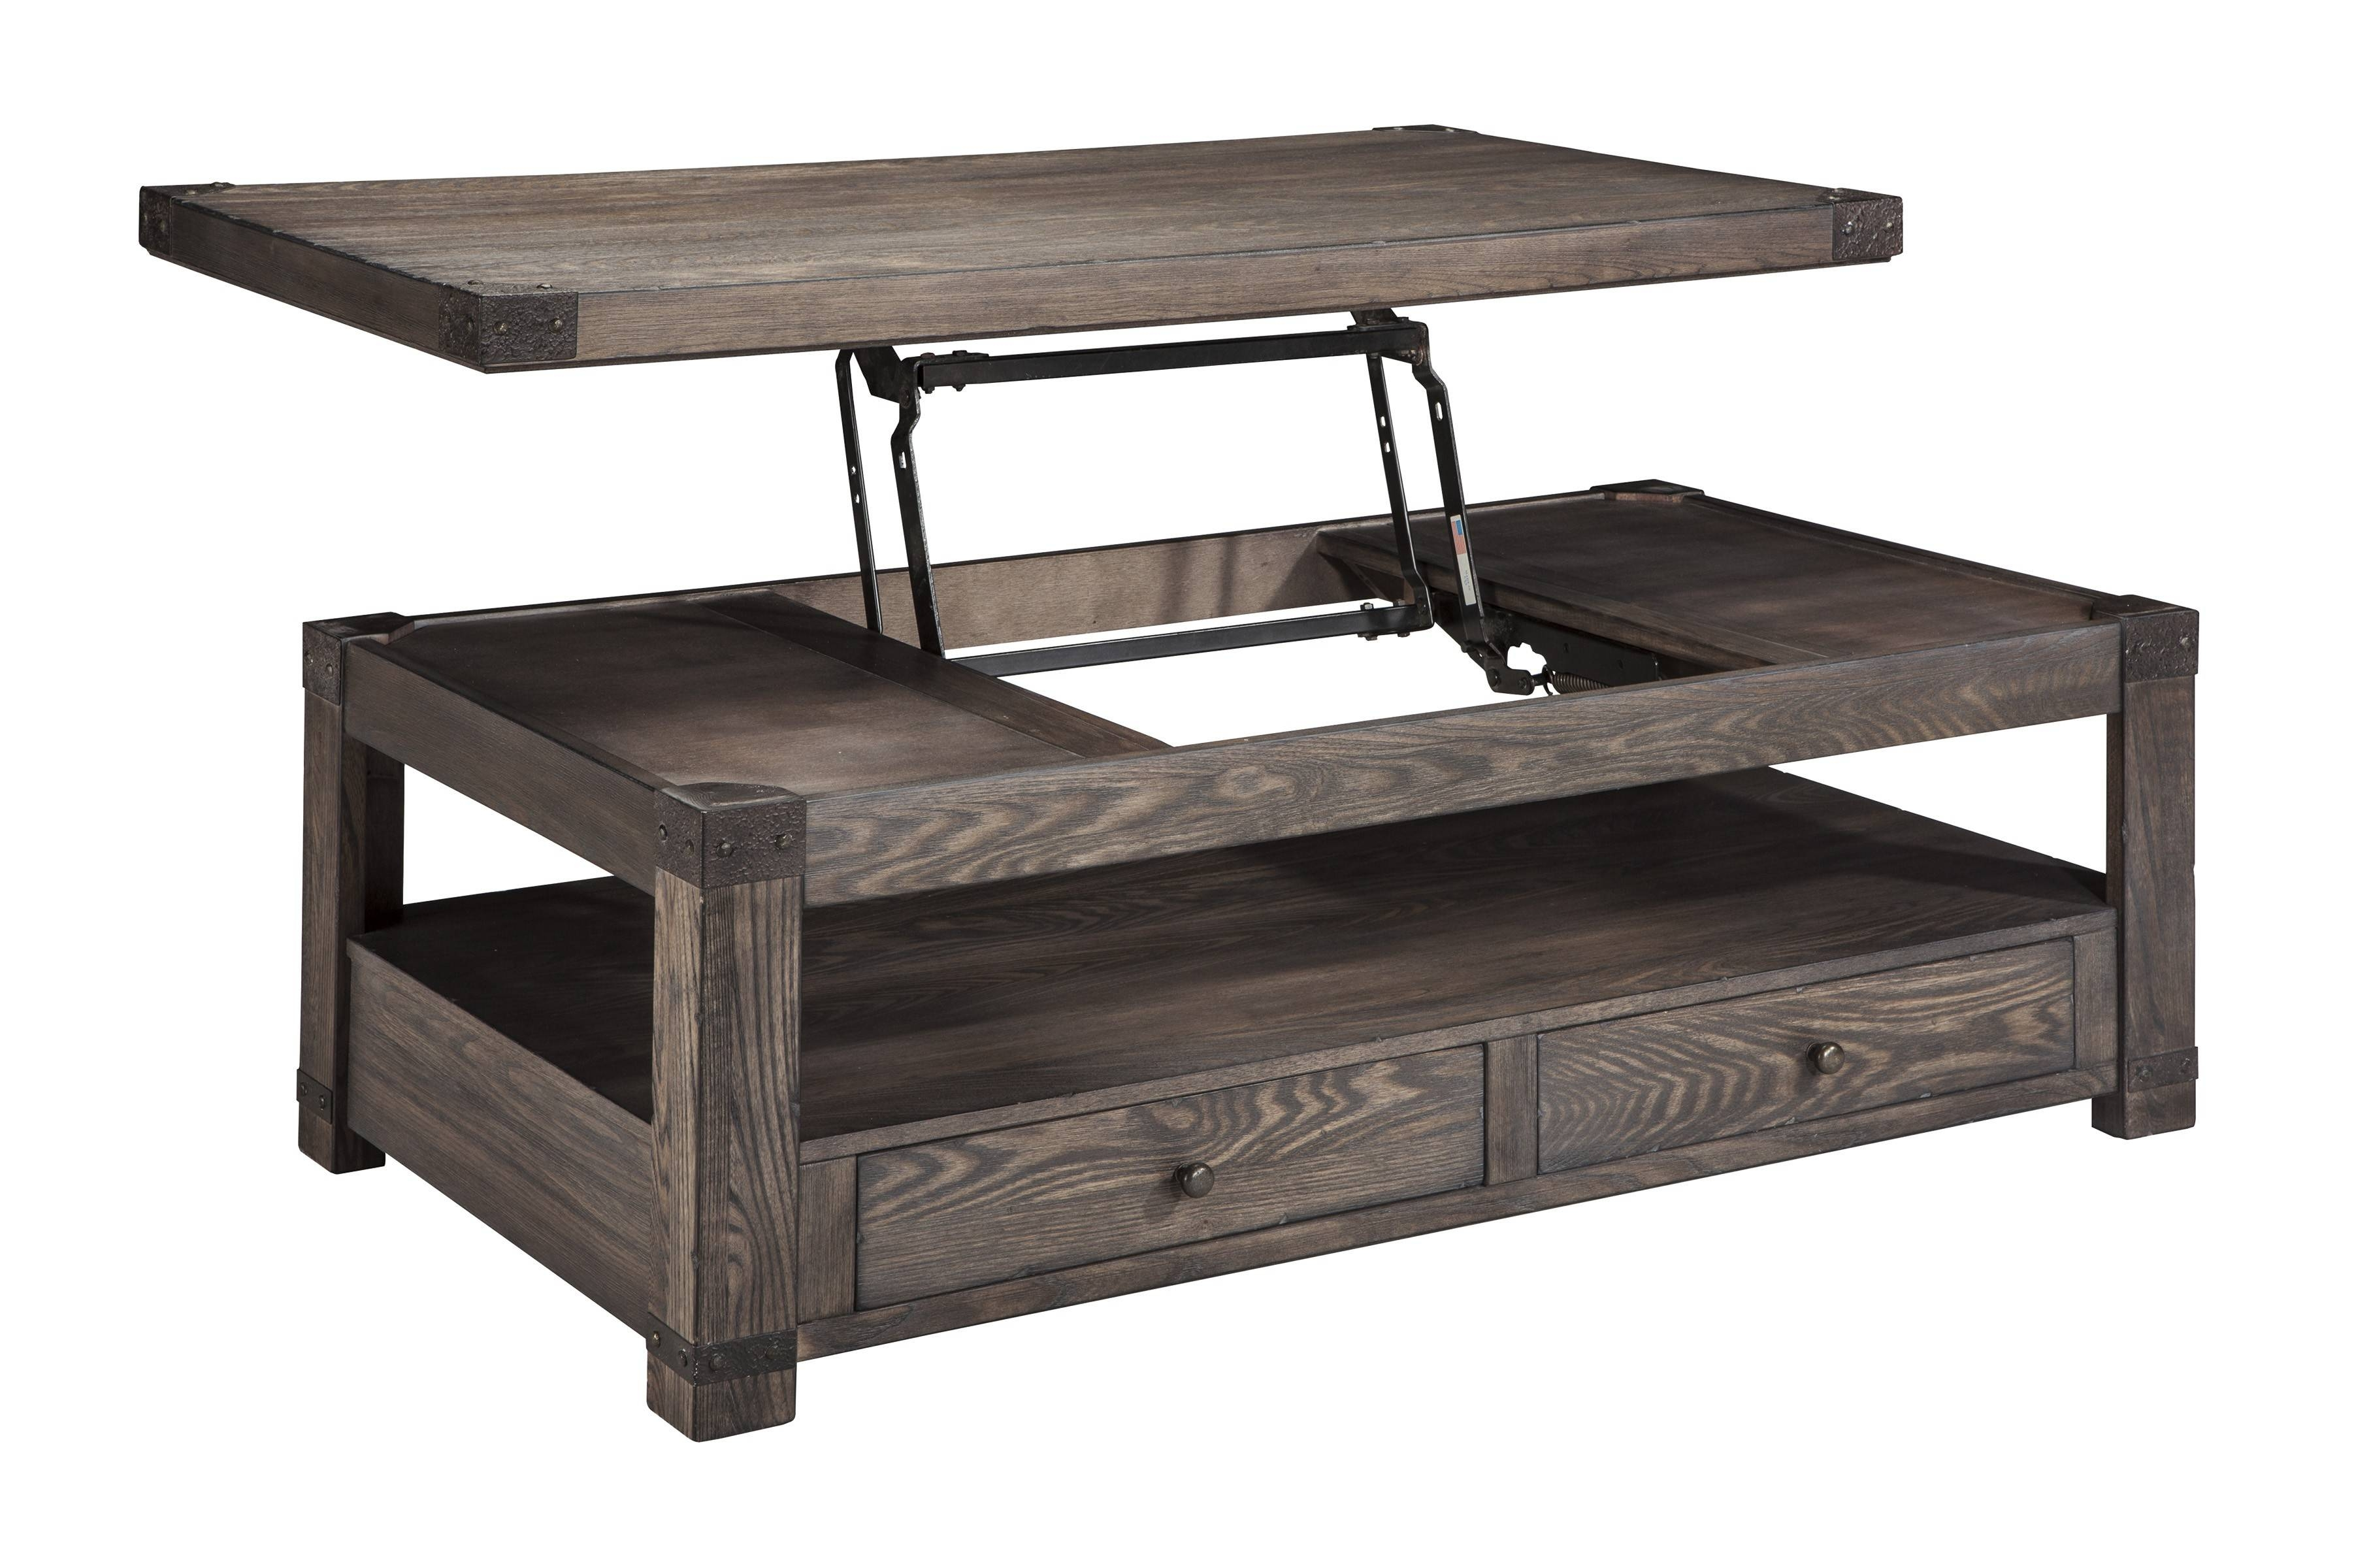 Buy Ashley Furniture Burladen Rectangular Lift Top Cocktail Table pertaining to Lift Top Coffee Table Furniture (Image 4 of 30)